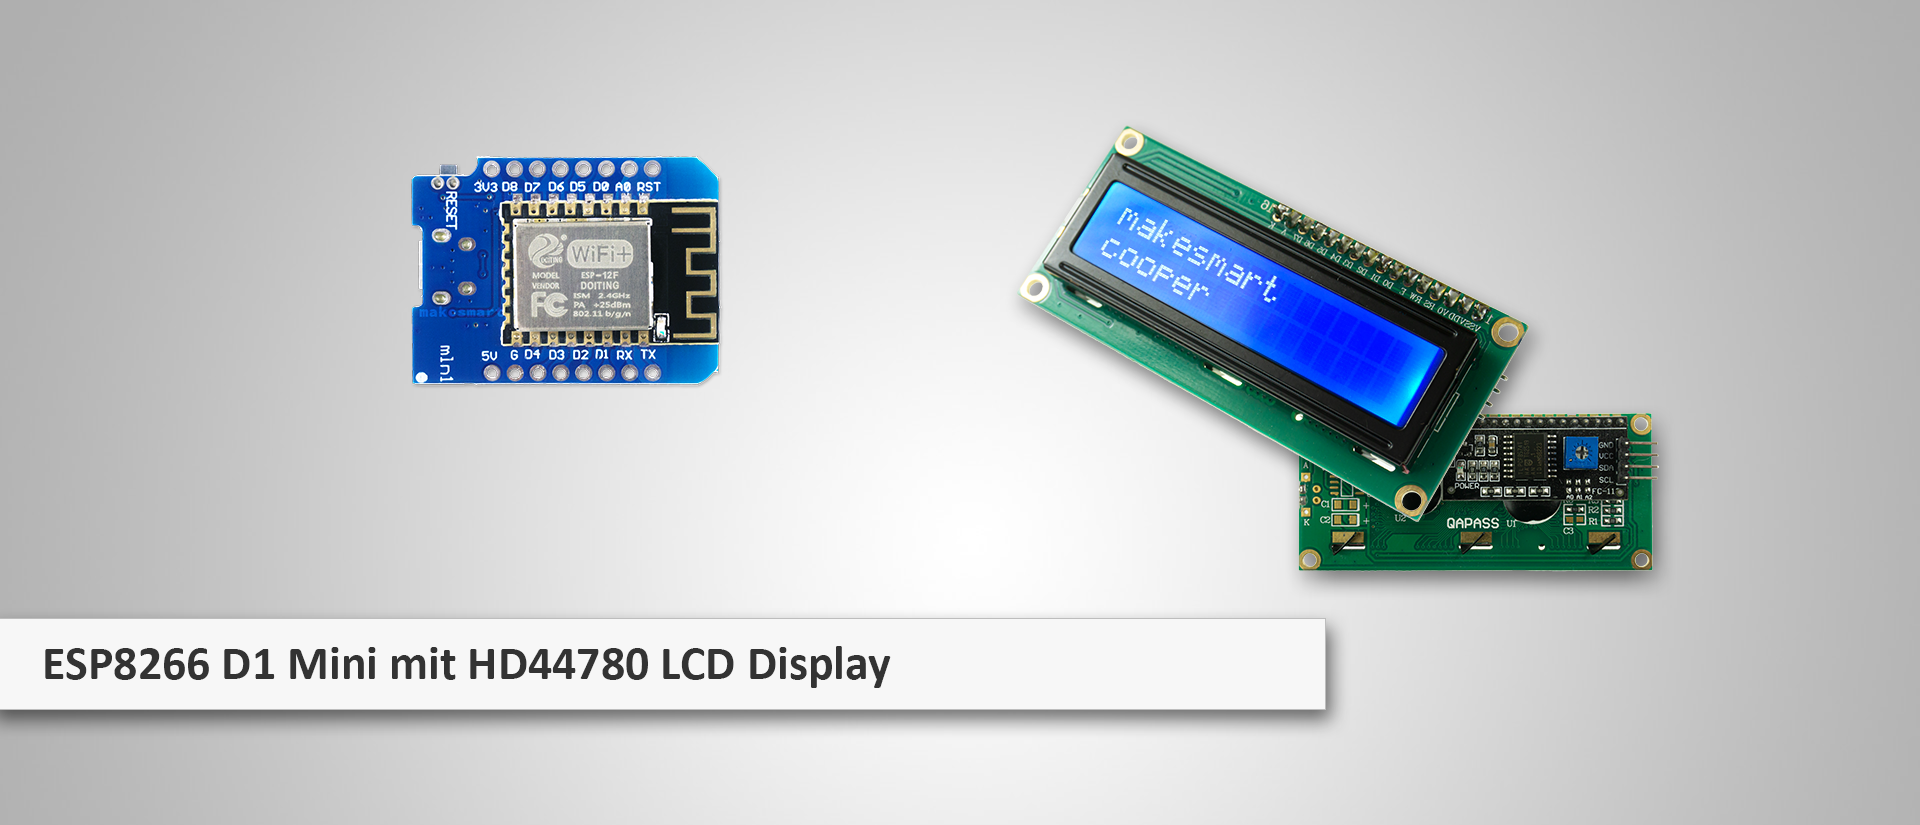 makesmart: LCD Display HD44780 I2C am ESP8266 D1 Mini